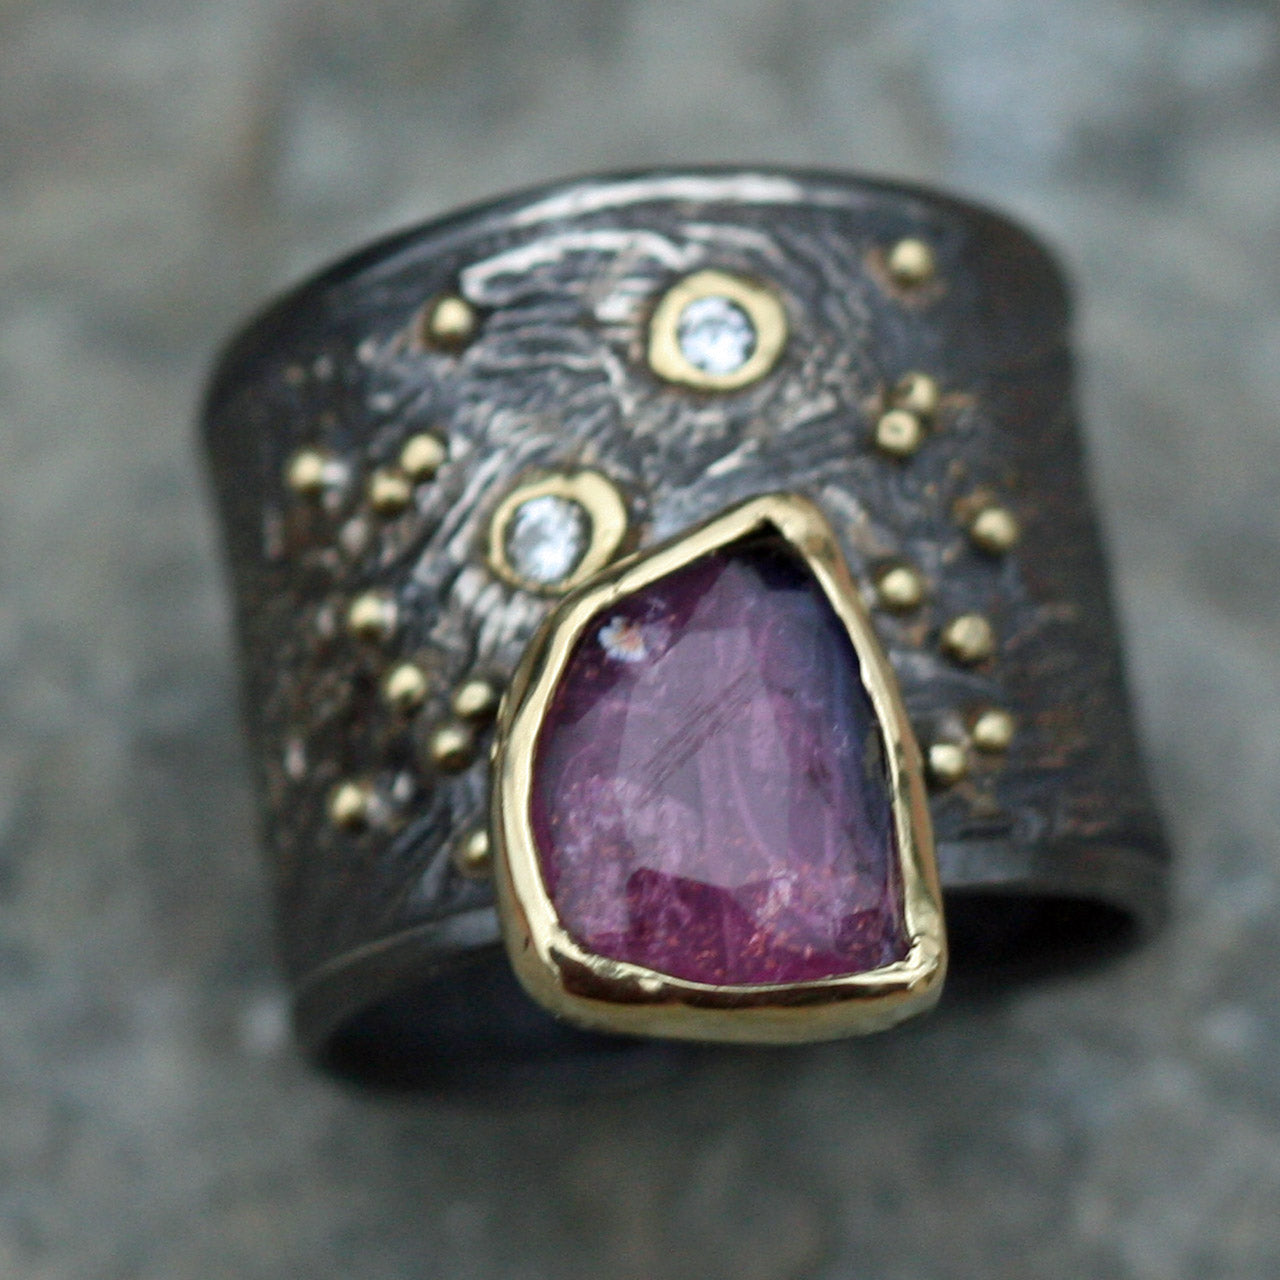 Fused gold on oxidized sterling silver, pink tourmaline set in 18k gold ring - size 71/2